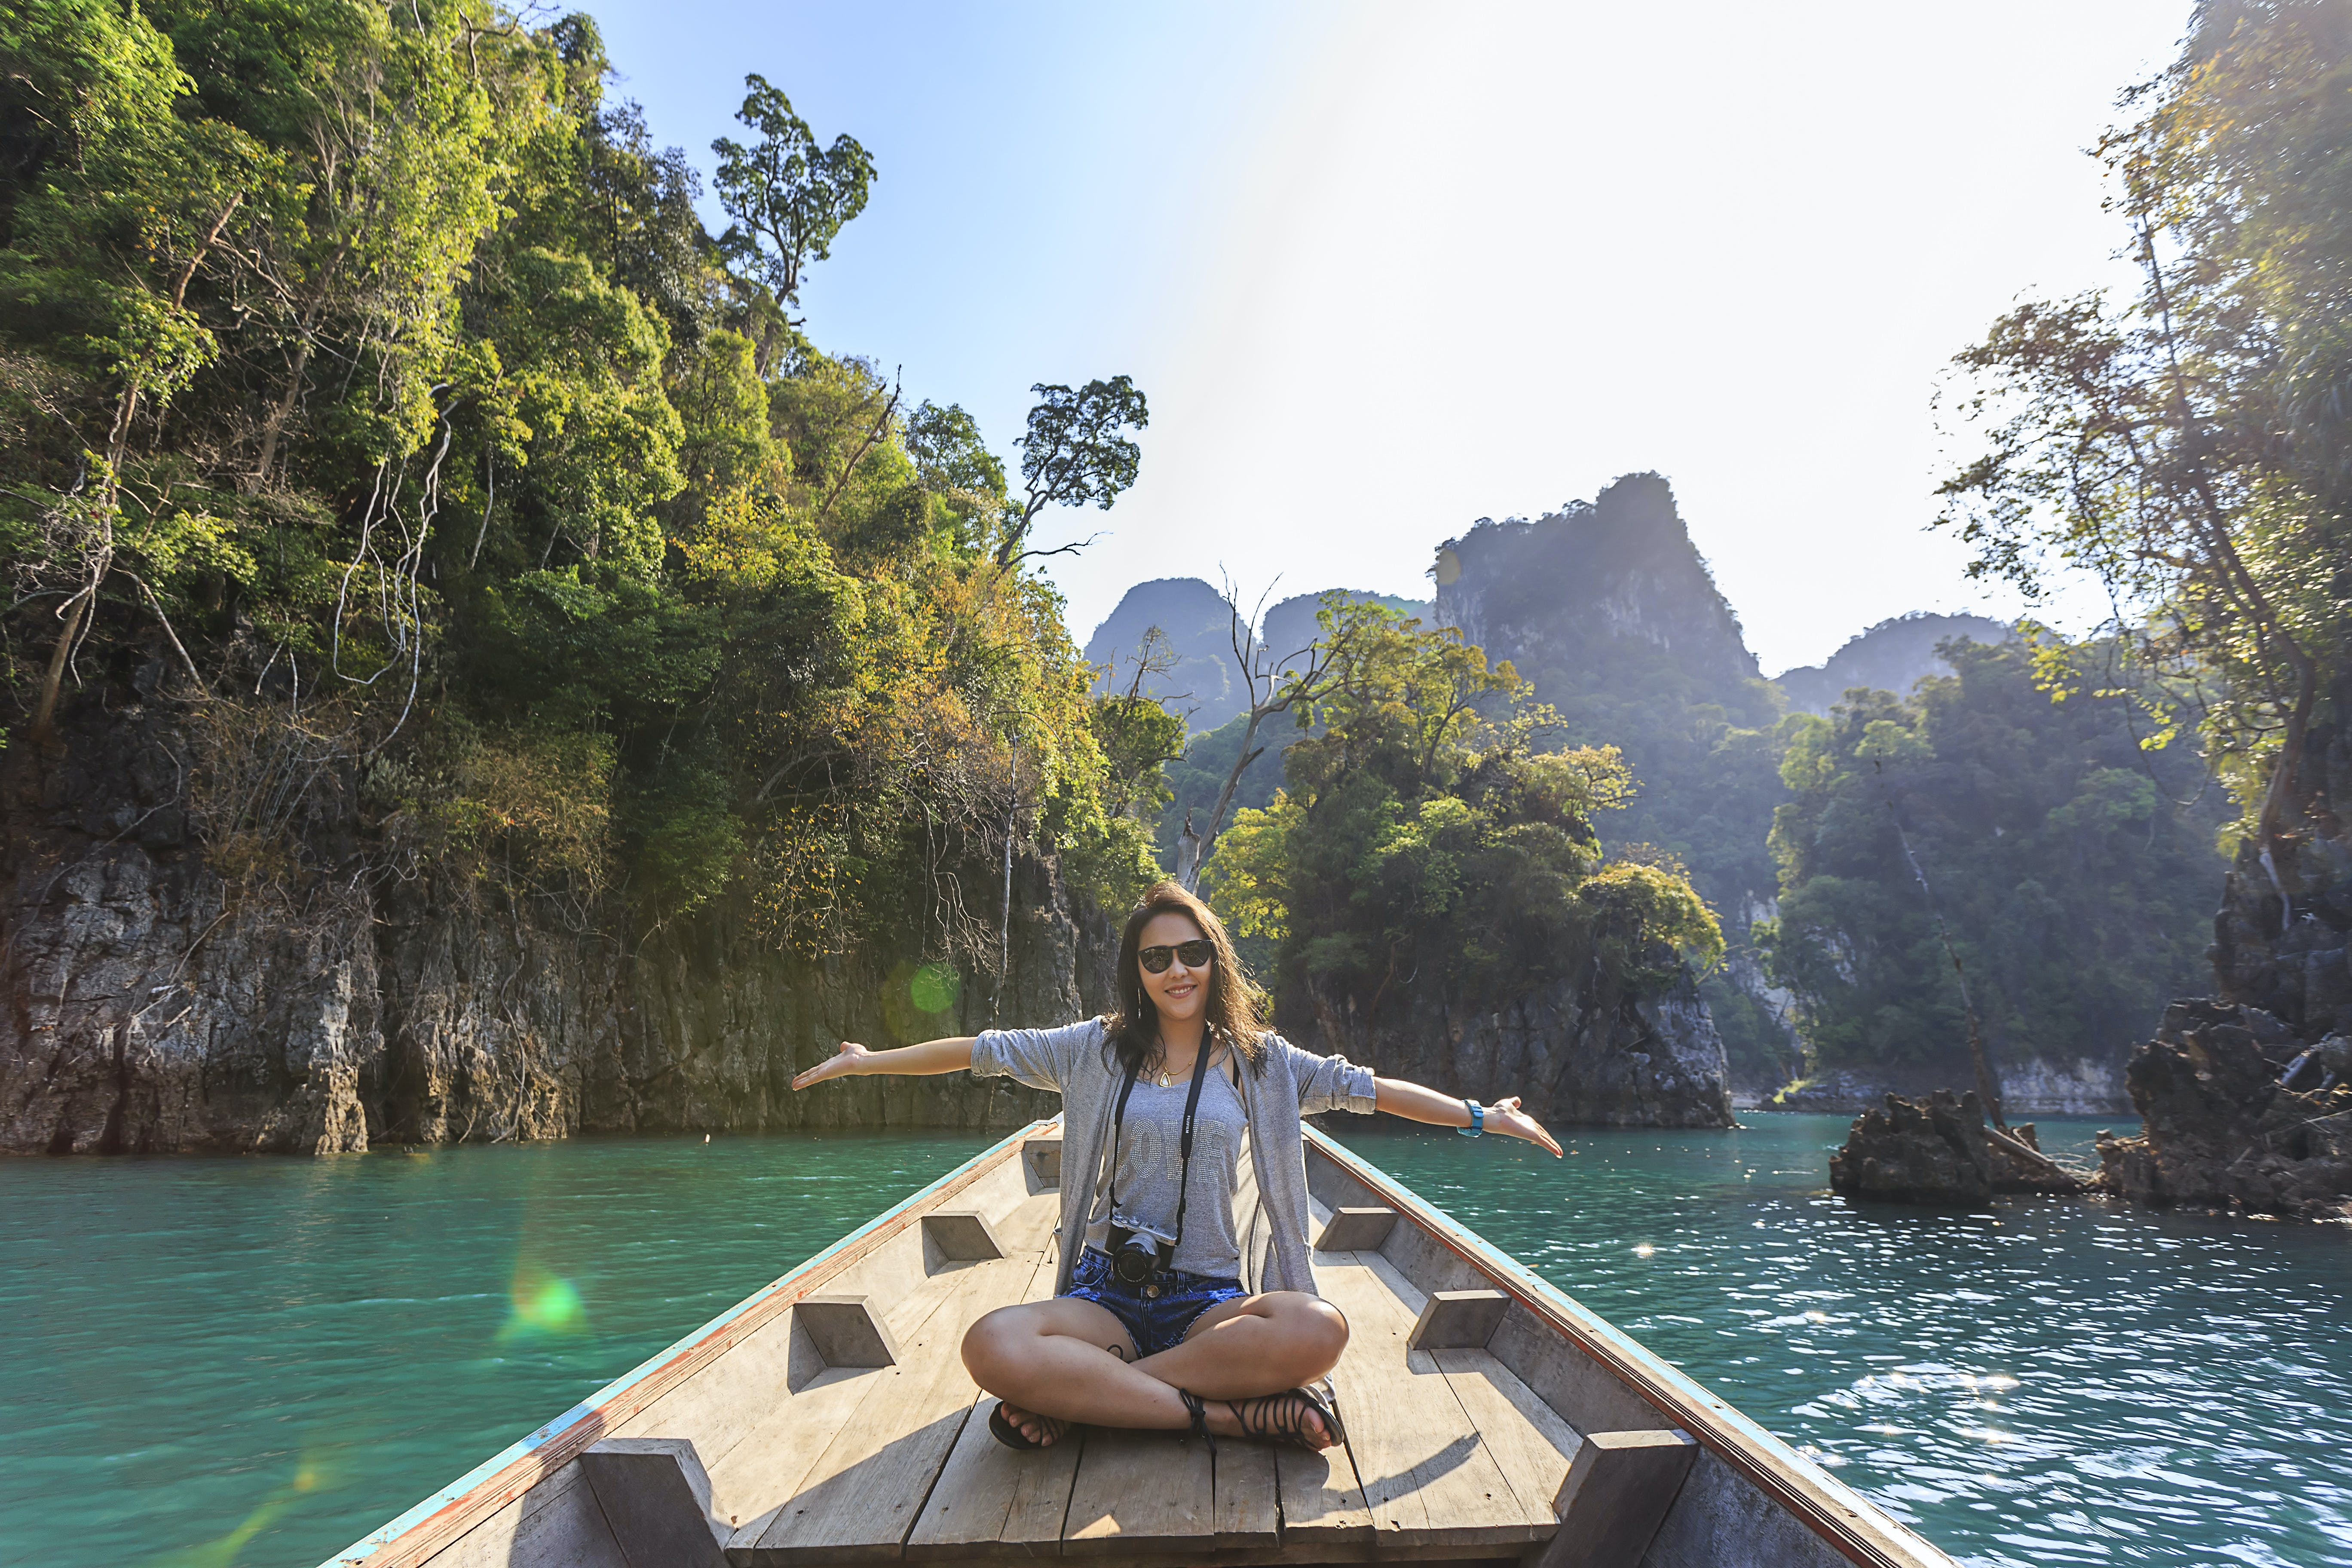 Photo of Woman Sitting on Boat Spreading Her Arms